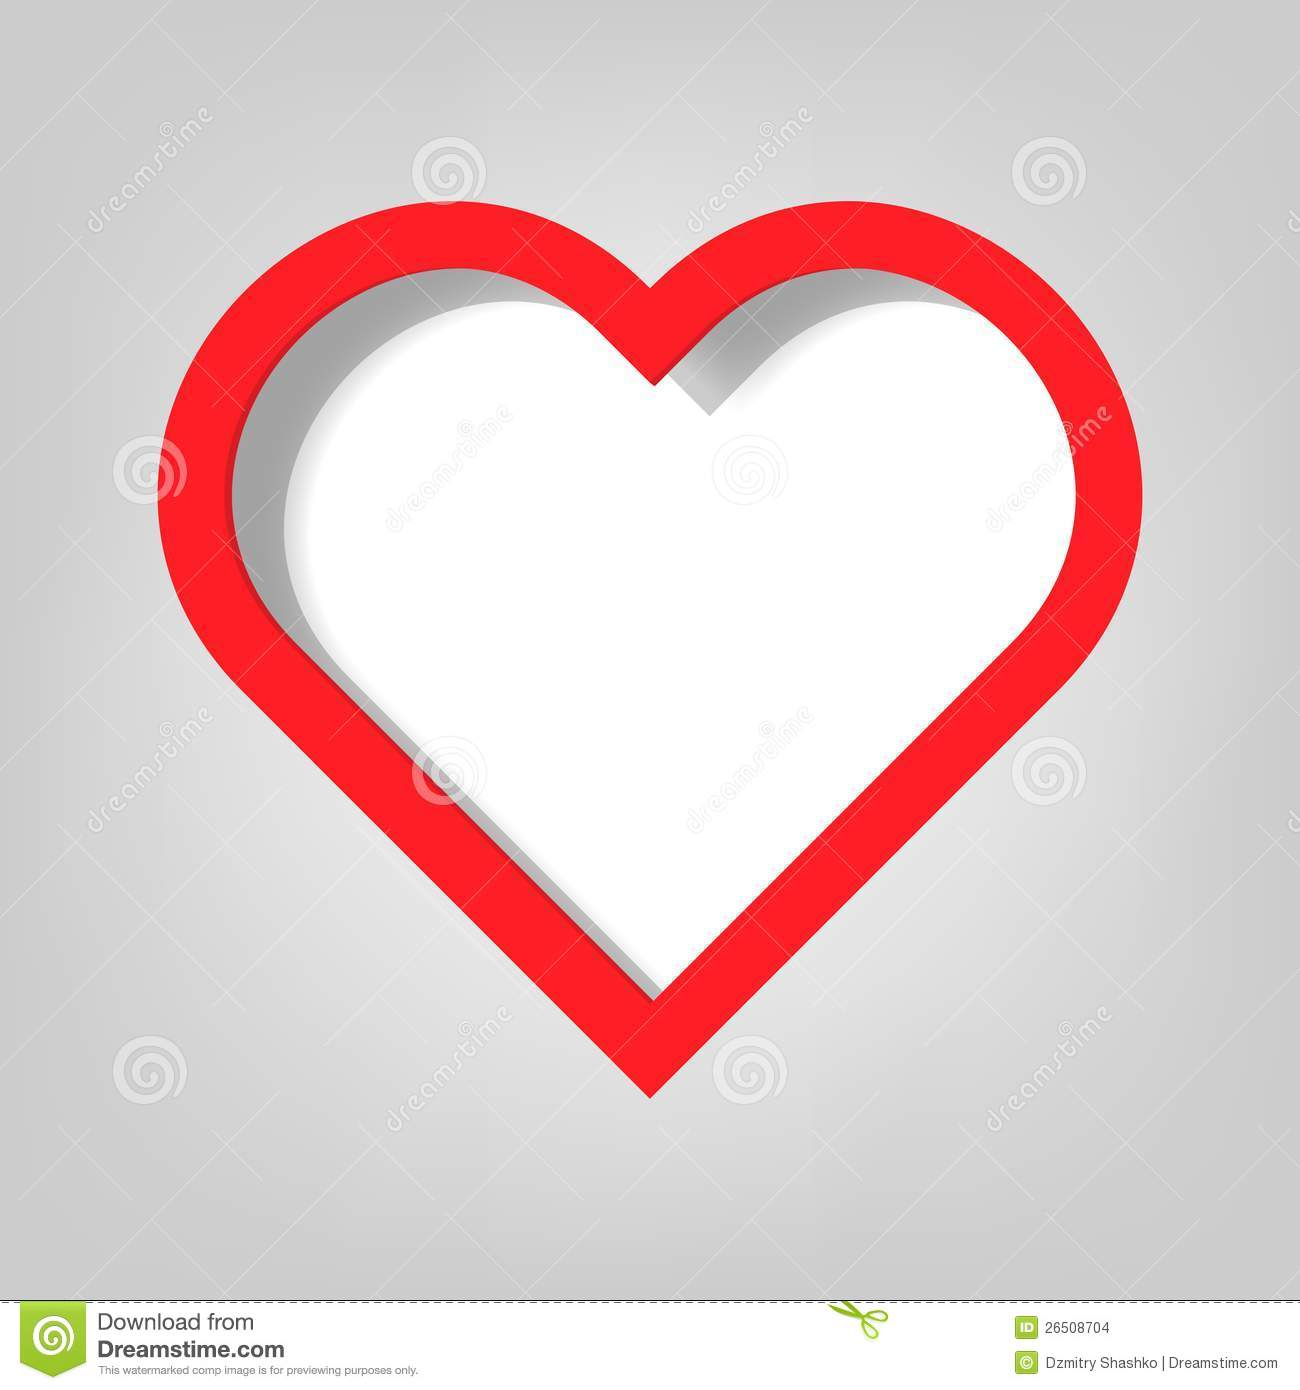 Red Heart Template Poster template. heart